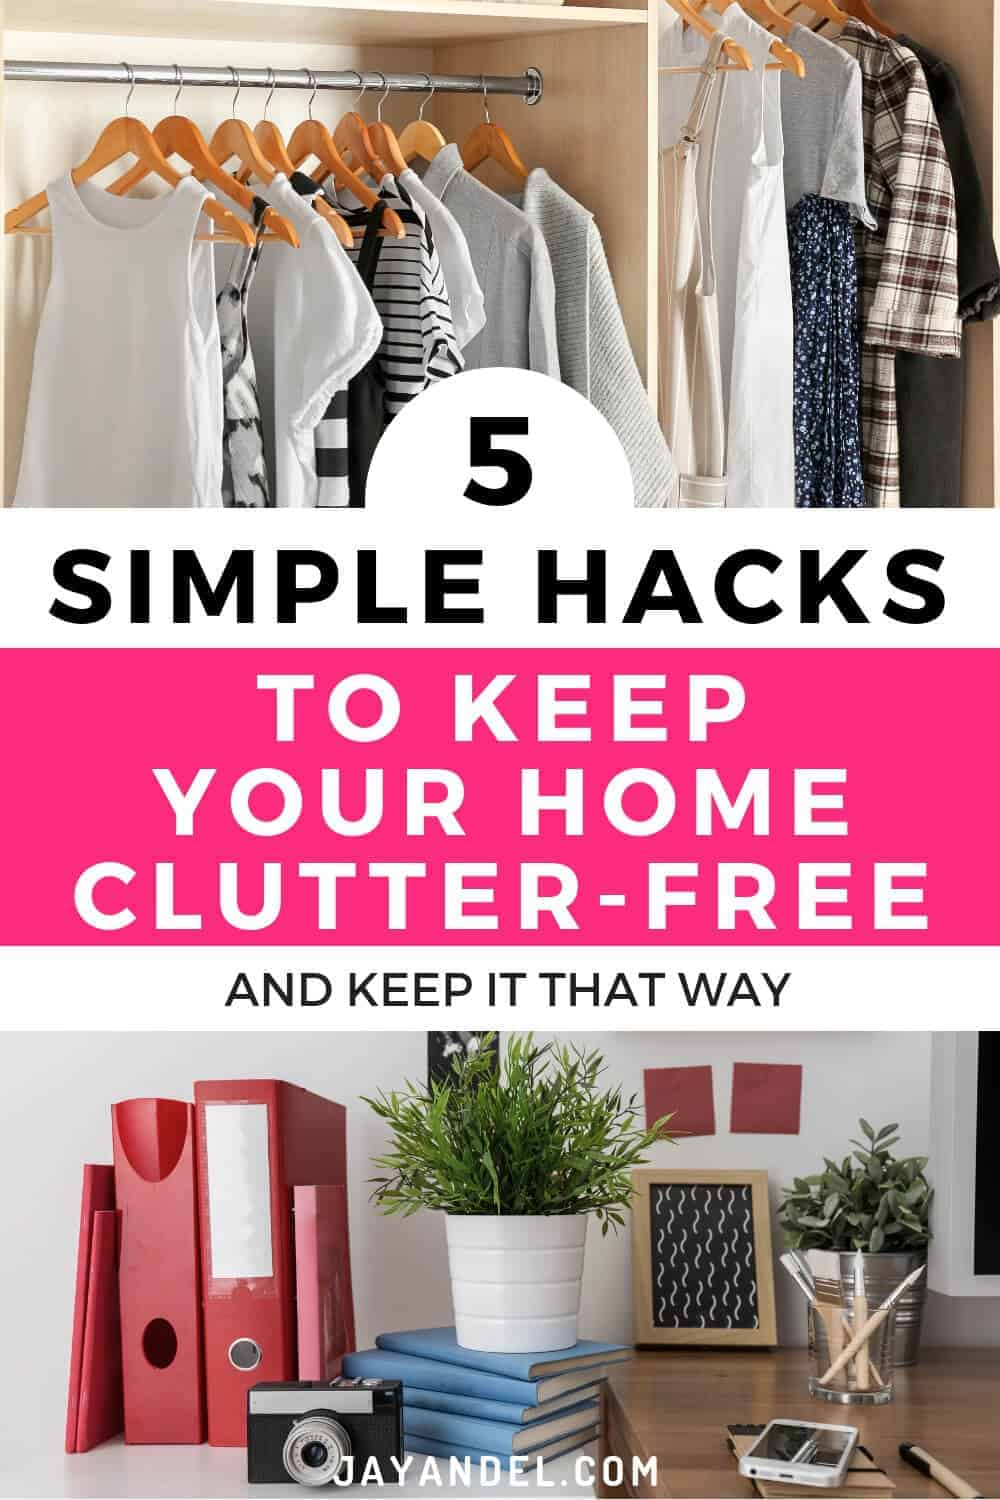 simple hacks to keep home clutter free